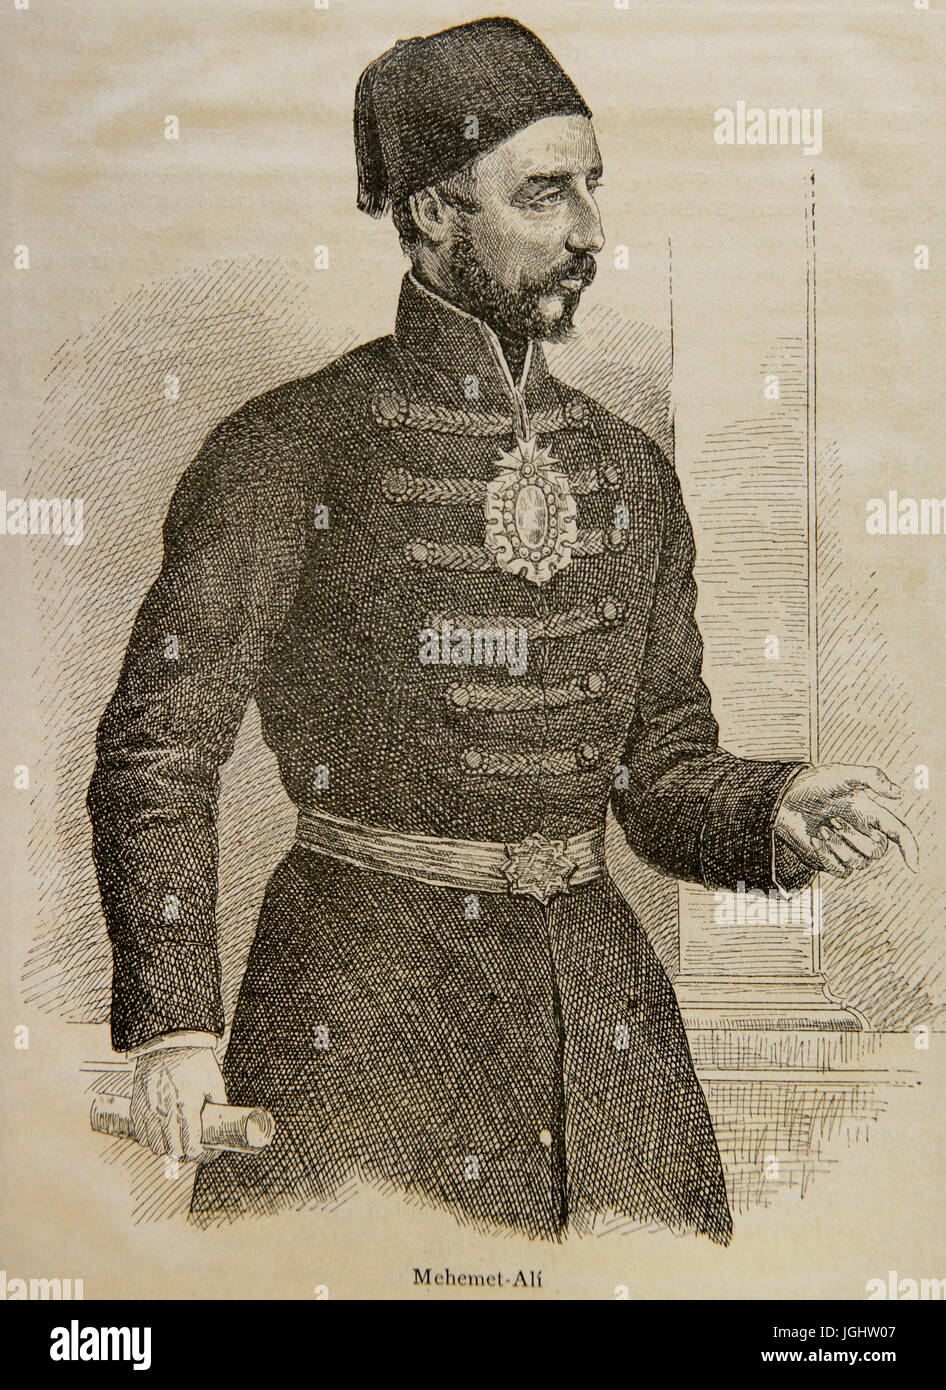 Muhammad Ali of Egypt (1769-1849). Ottoman Albanian commander. Engraving in The Universal History, 1881. - Stock Image